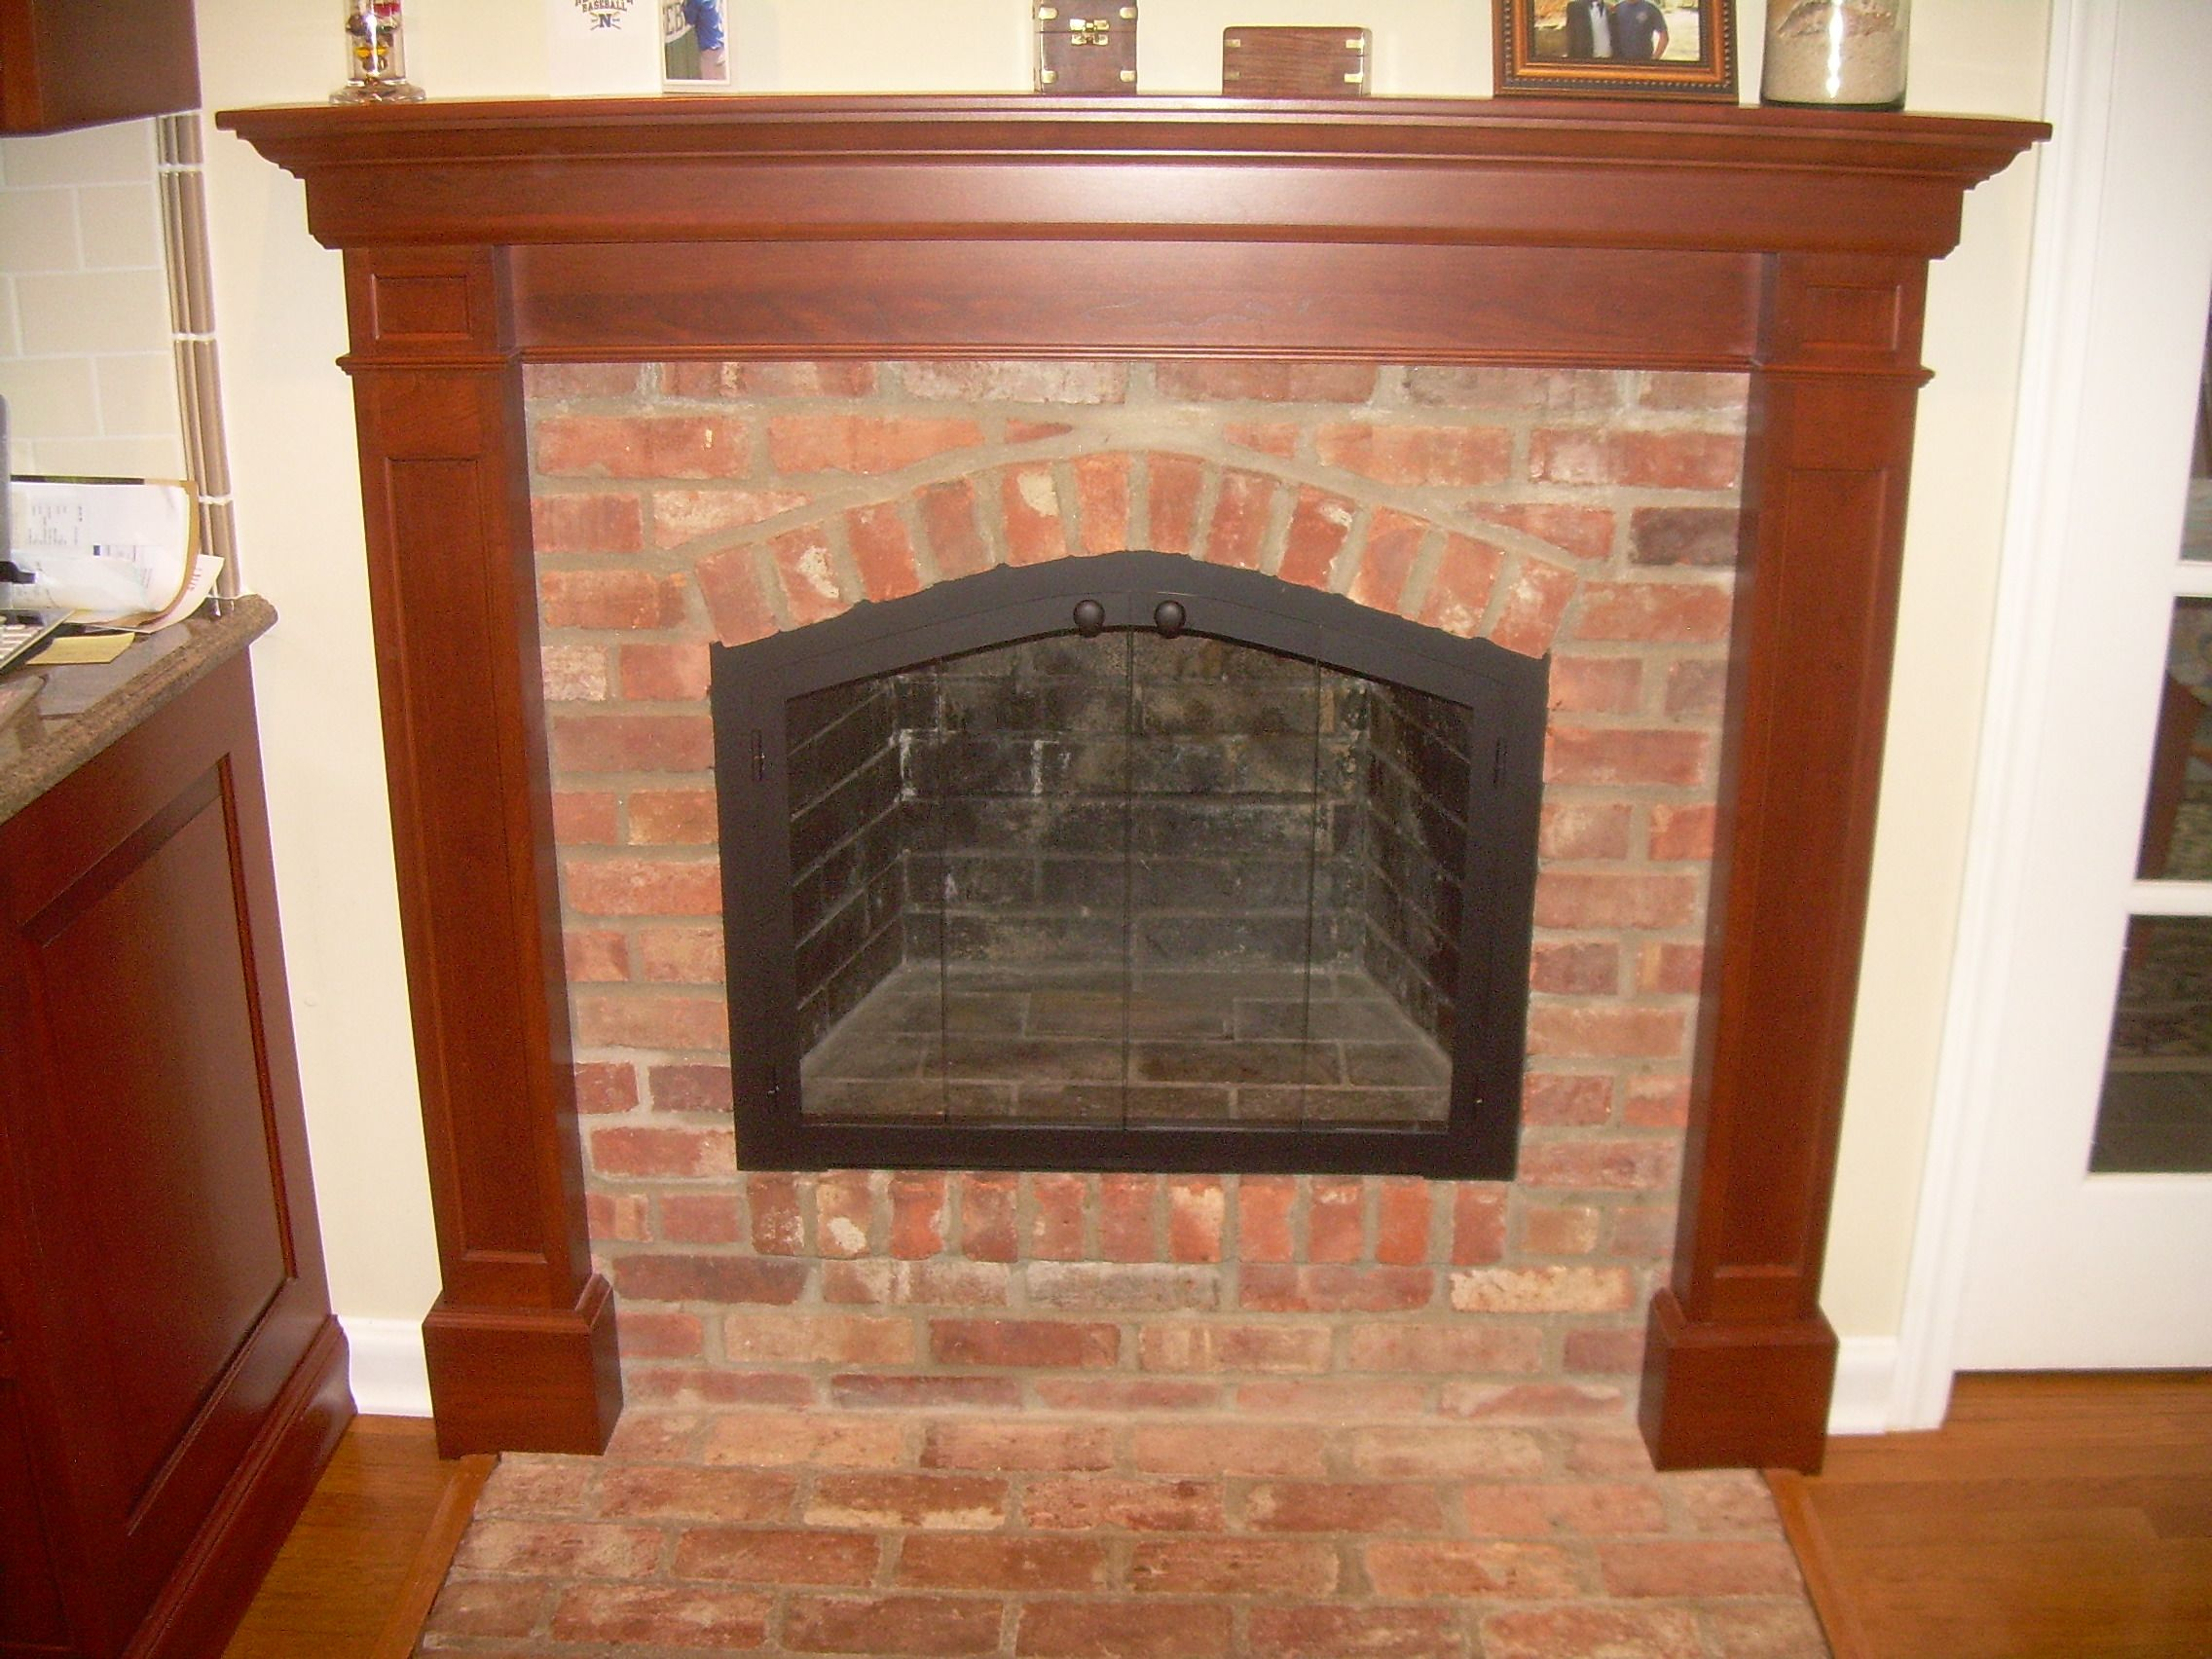 A brick arched fireplace with custom glass doors fireplaces